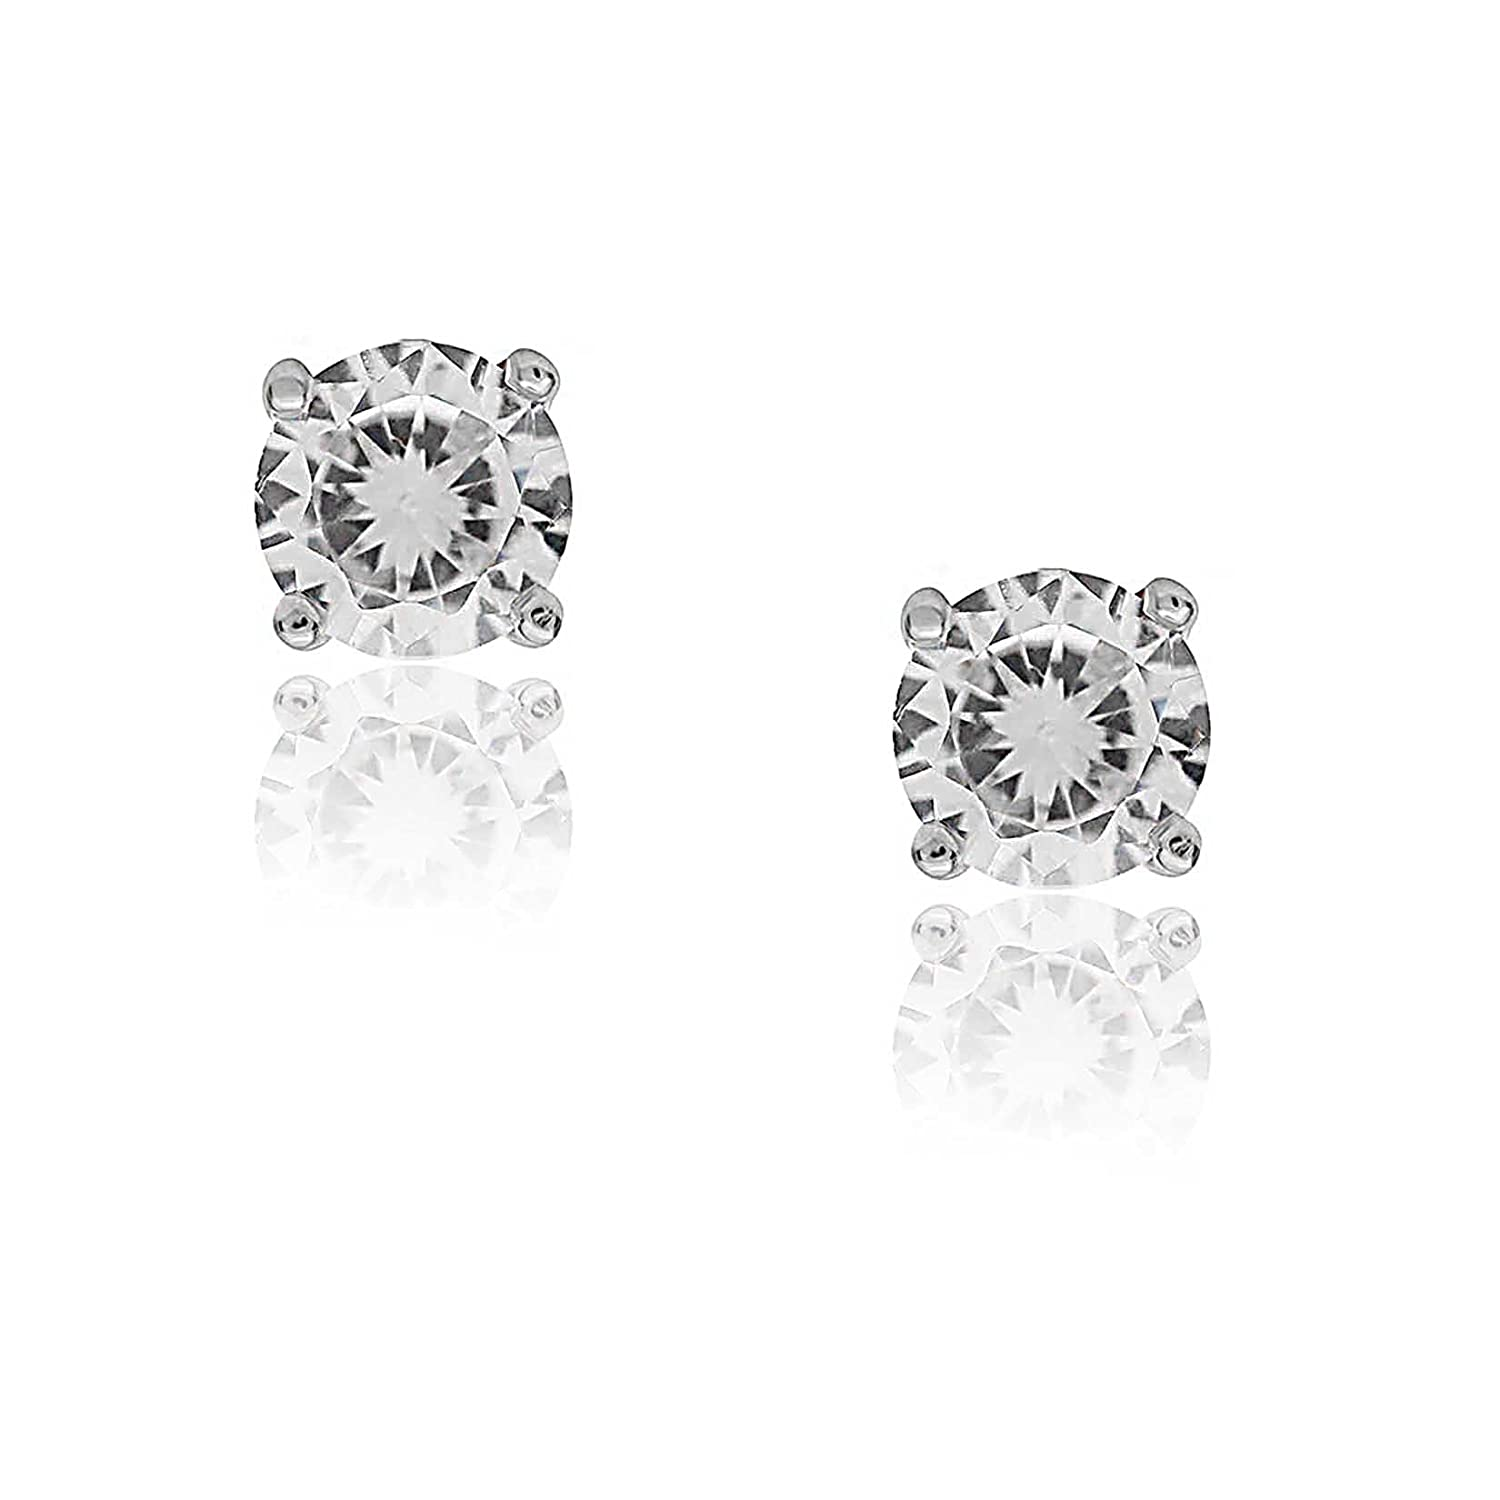 5d43aadbb Amazon.com: Kezef Creations 925 Sterling Silver CZ Stud Earrings with 3mm Round  White Cubic Zirconia Gemstones: Jewelry